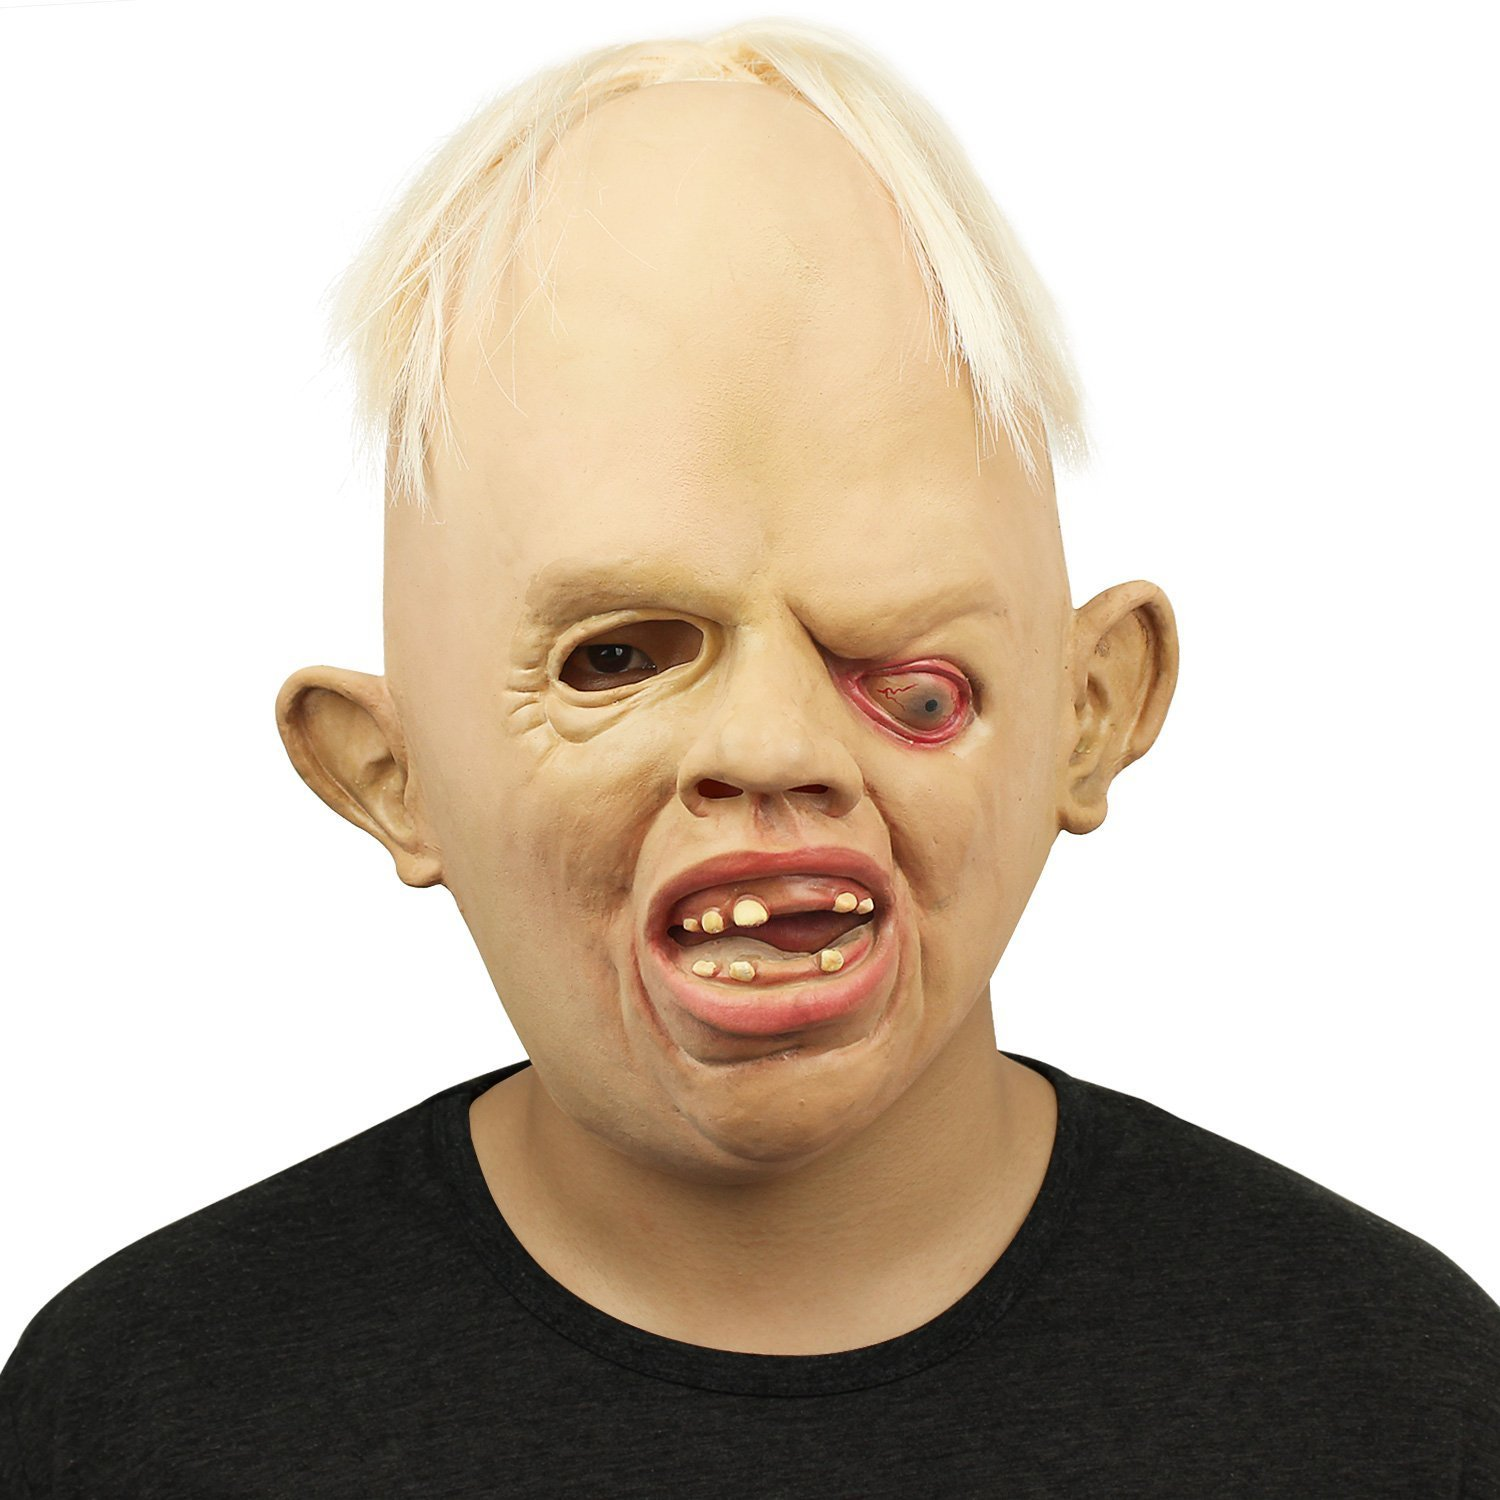 Amazon.com: Novelty Latex Rubber Creepy Scary Ugly Baby Head the ...